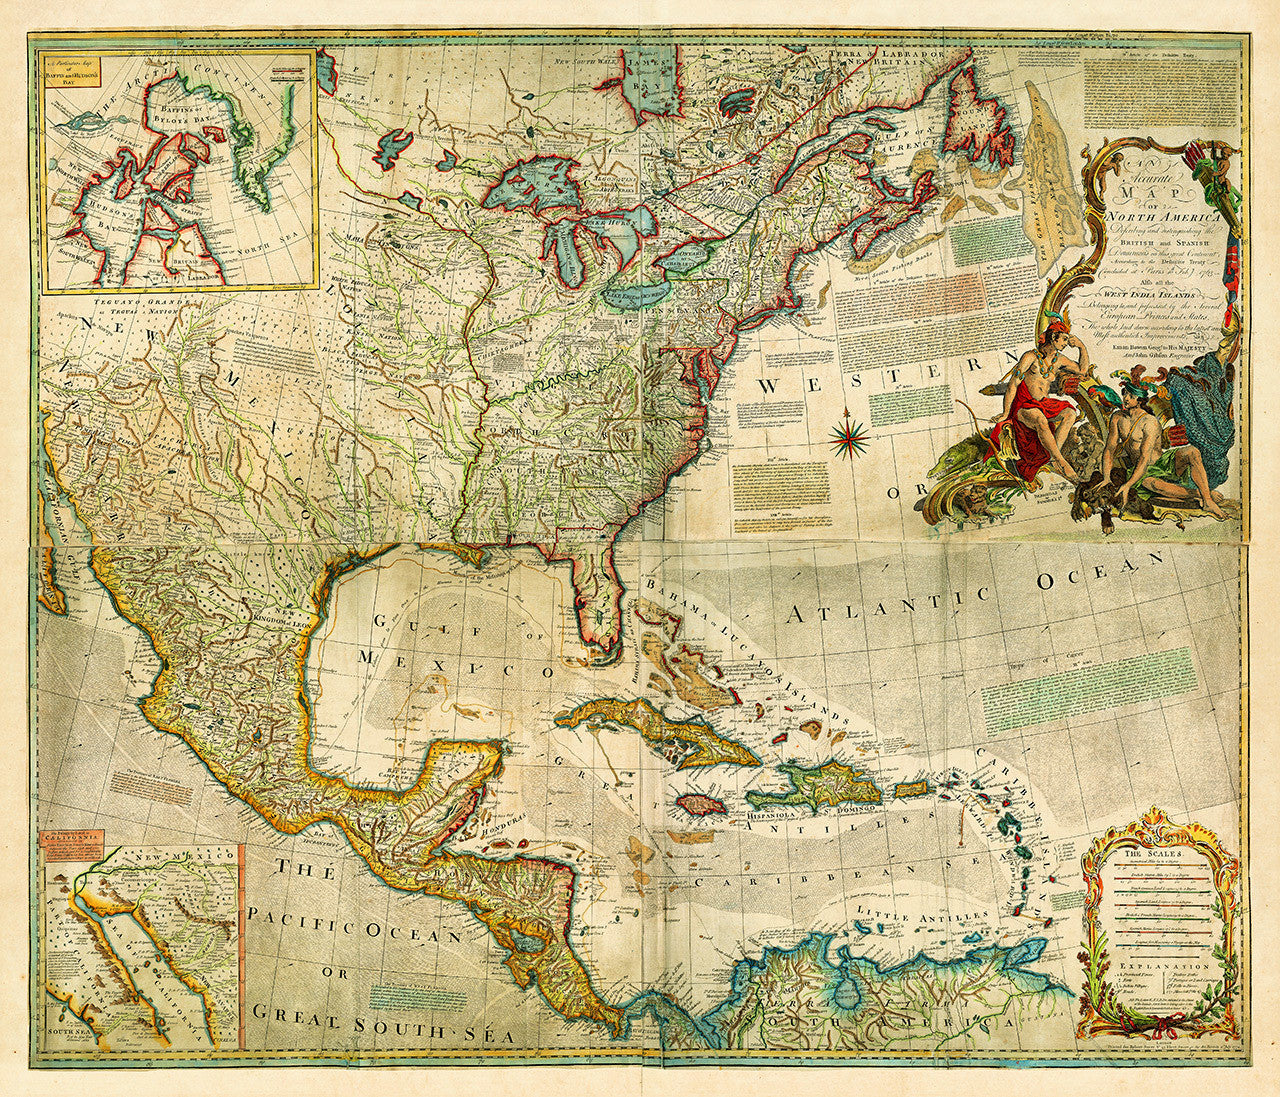 North America, 1772, Caribbean, European Claims, American Revolutionary Era  Map